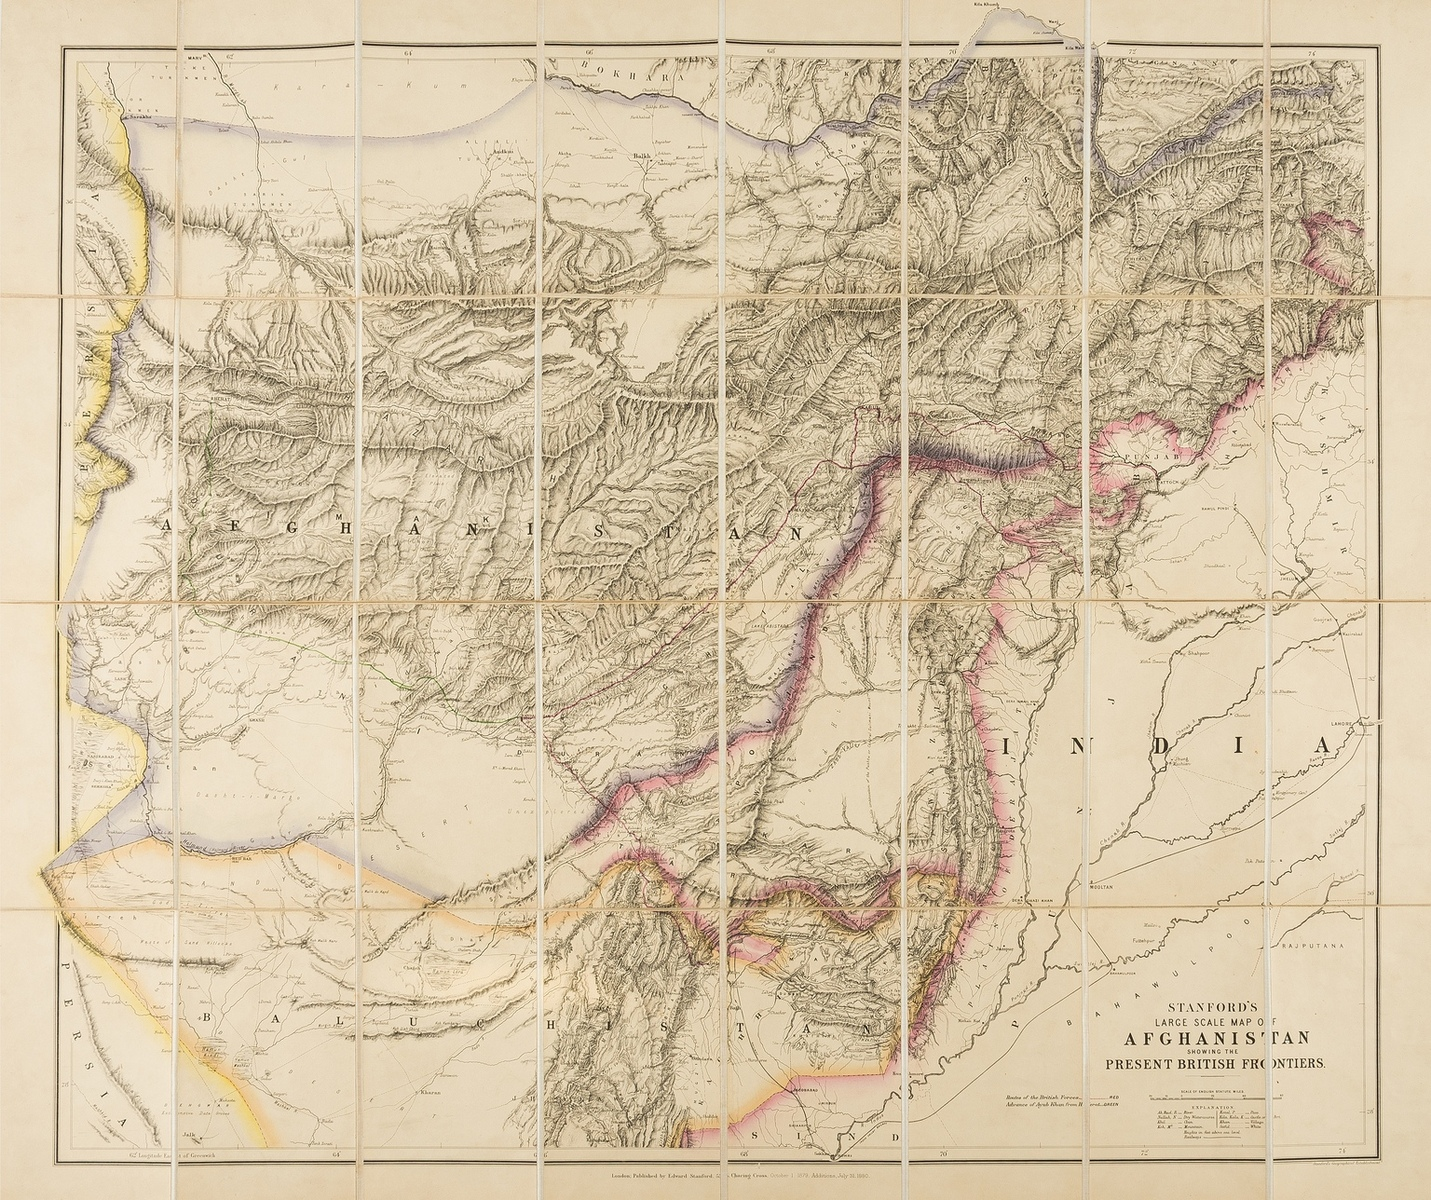 Central Asia.- Stanford (Edward) Stanford's Large Scale Map of Afghanistan showing the Present …